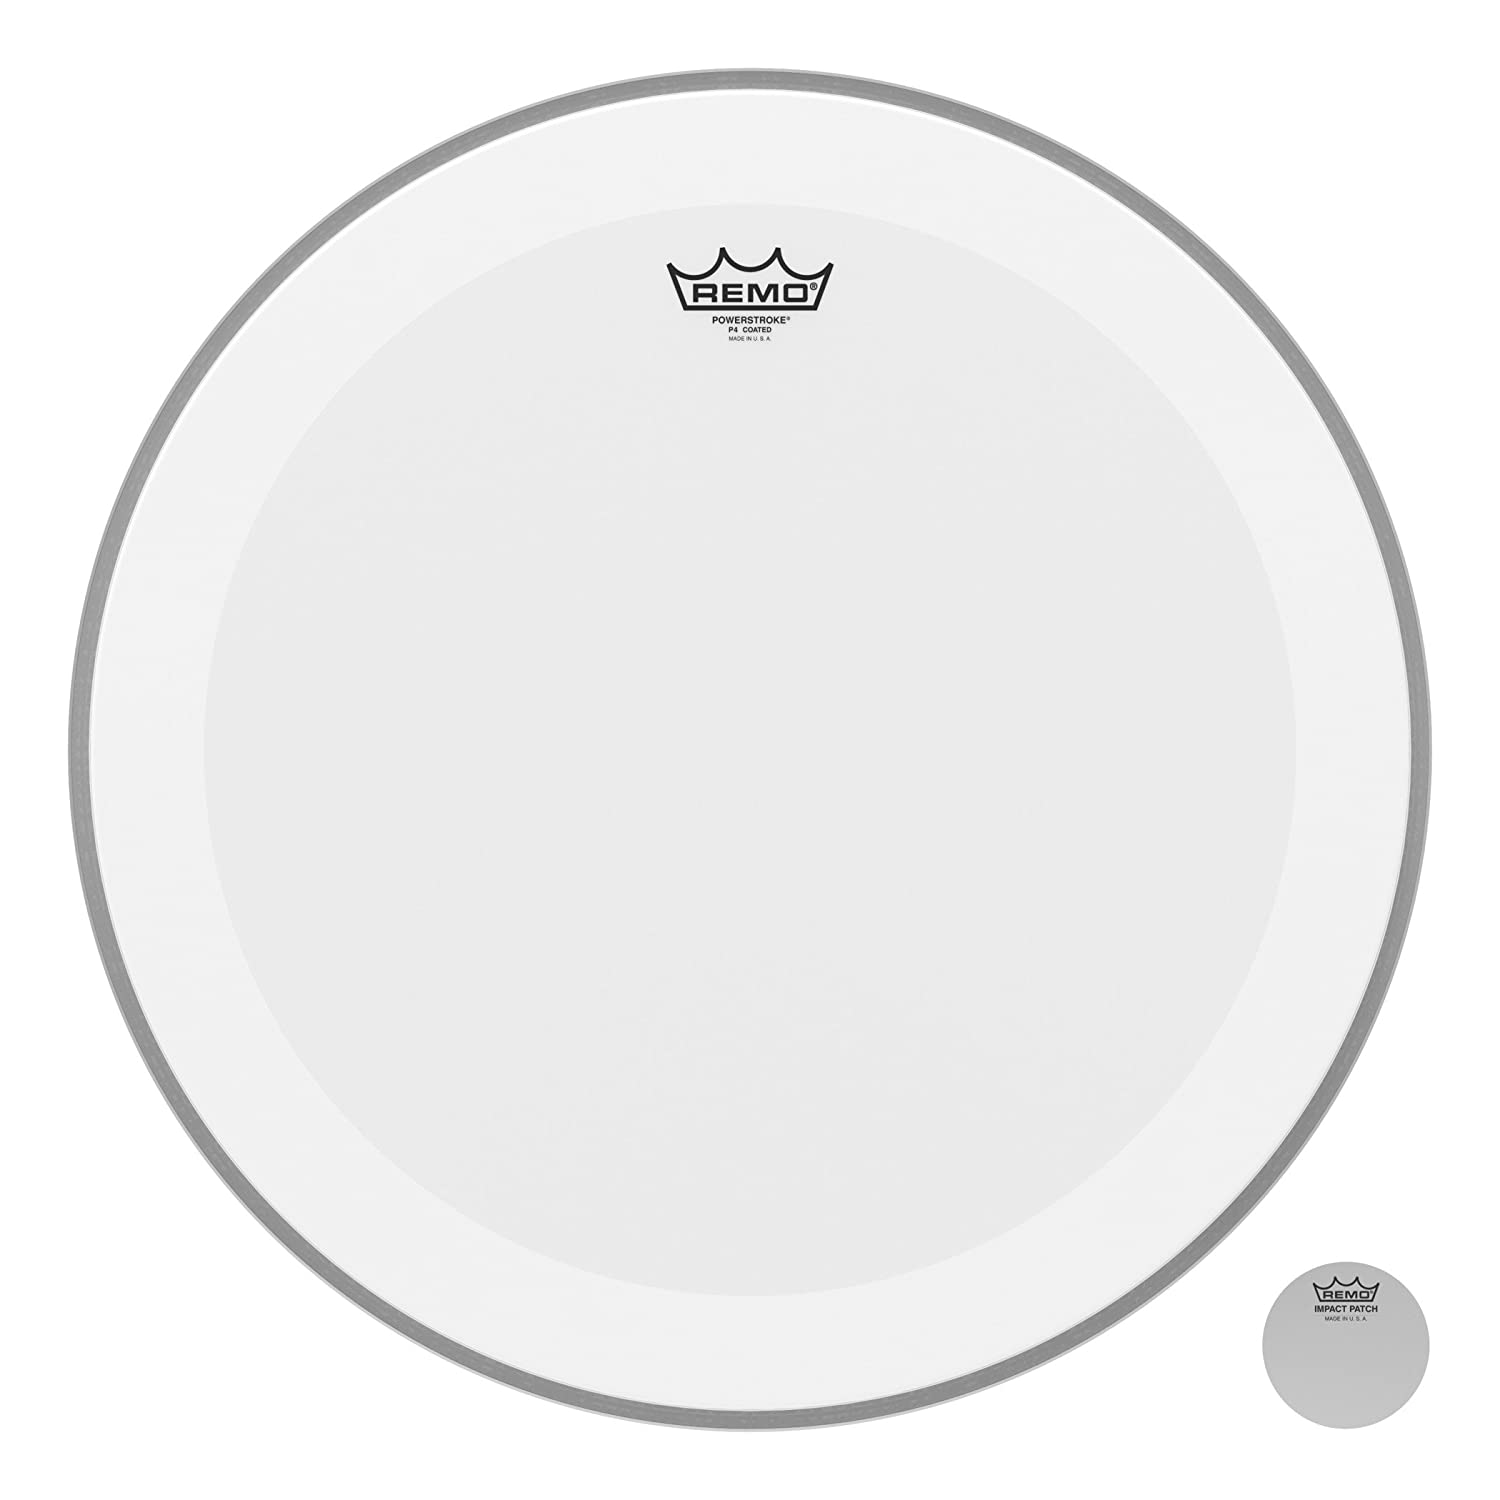 Remo Coated Powerstroke 4 Bass Drum Head (Dot On Top), 20-inch P4-1120-C2